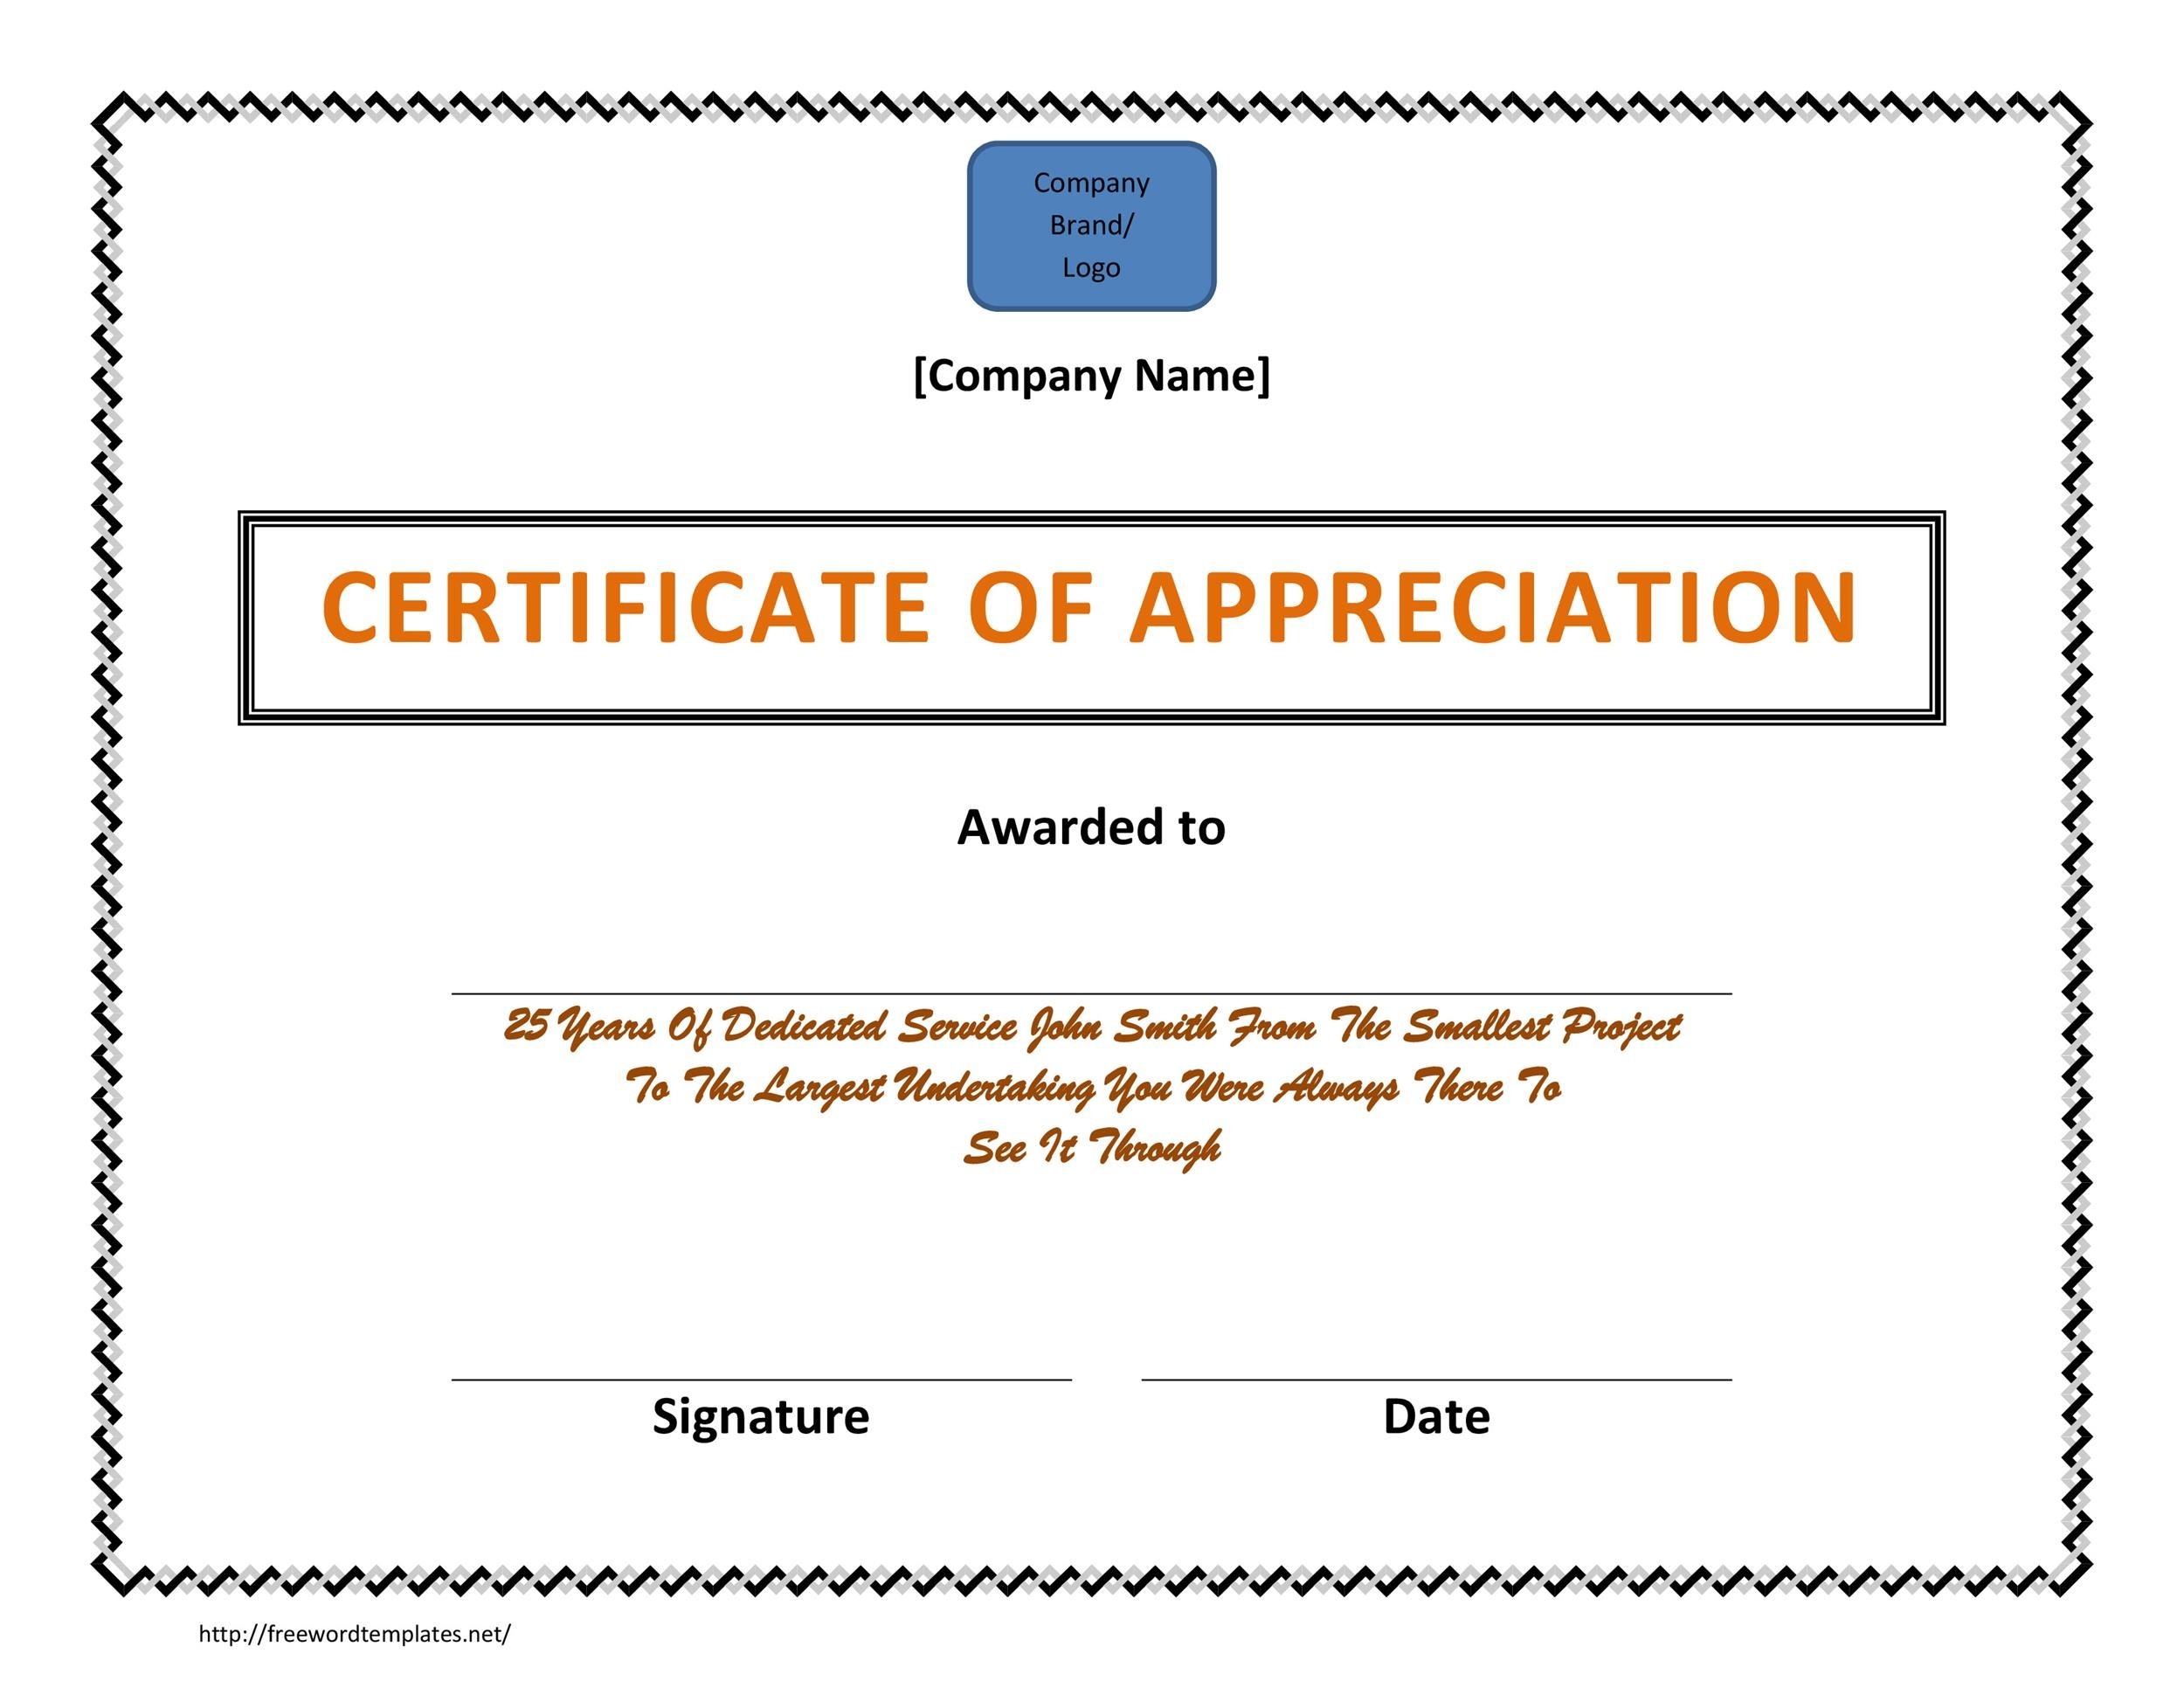 free certificate of appreciation 05 - Appreciation Certificate Template For Employee